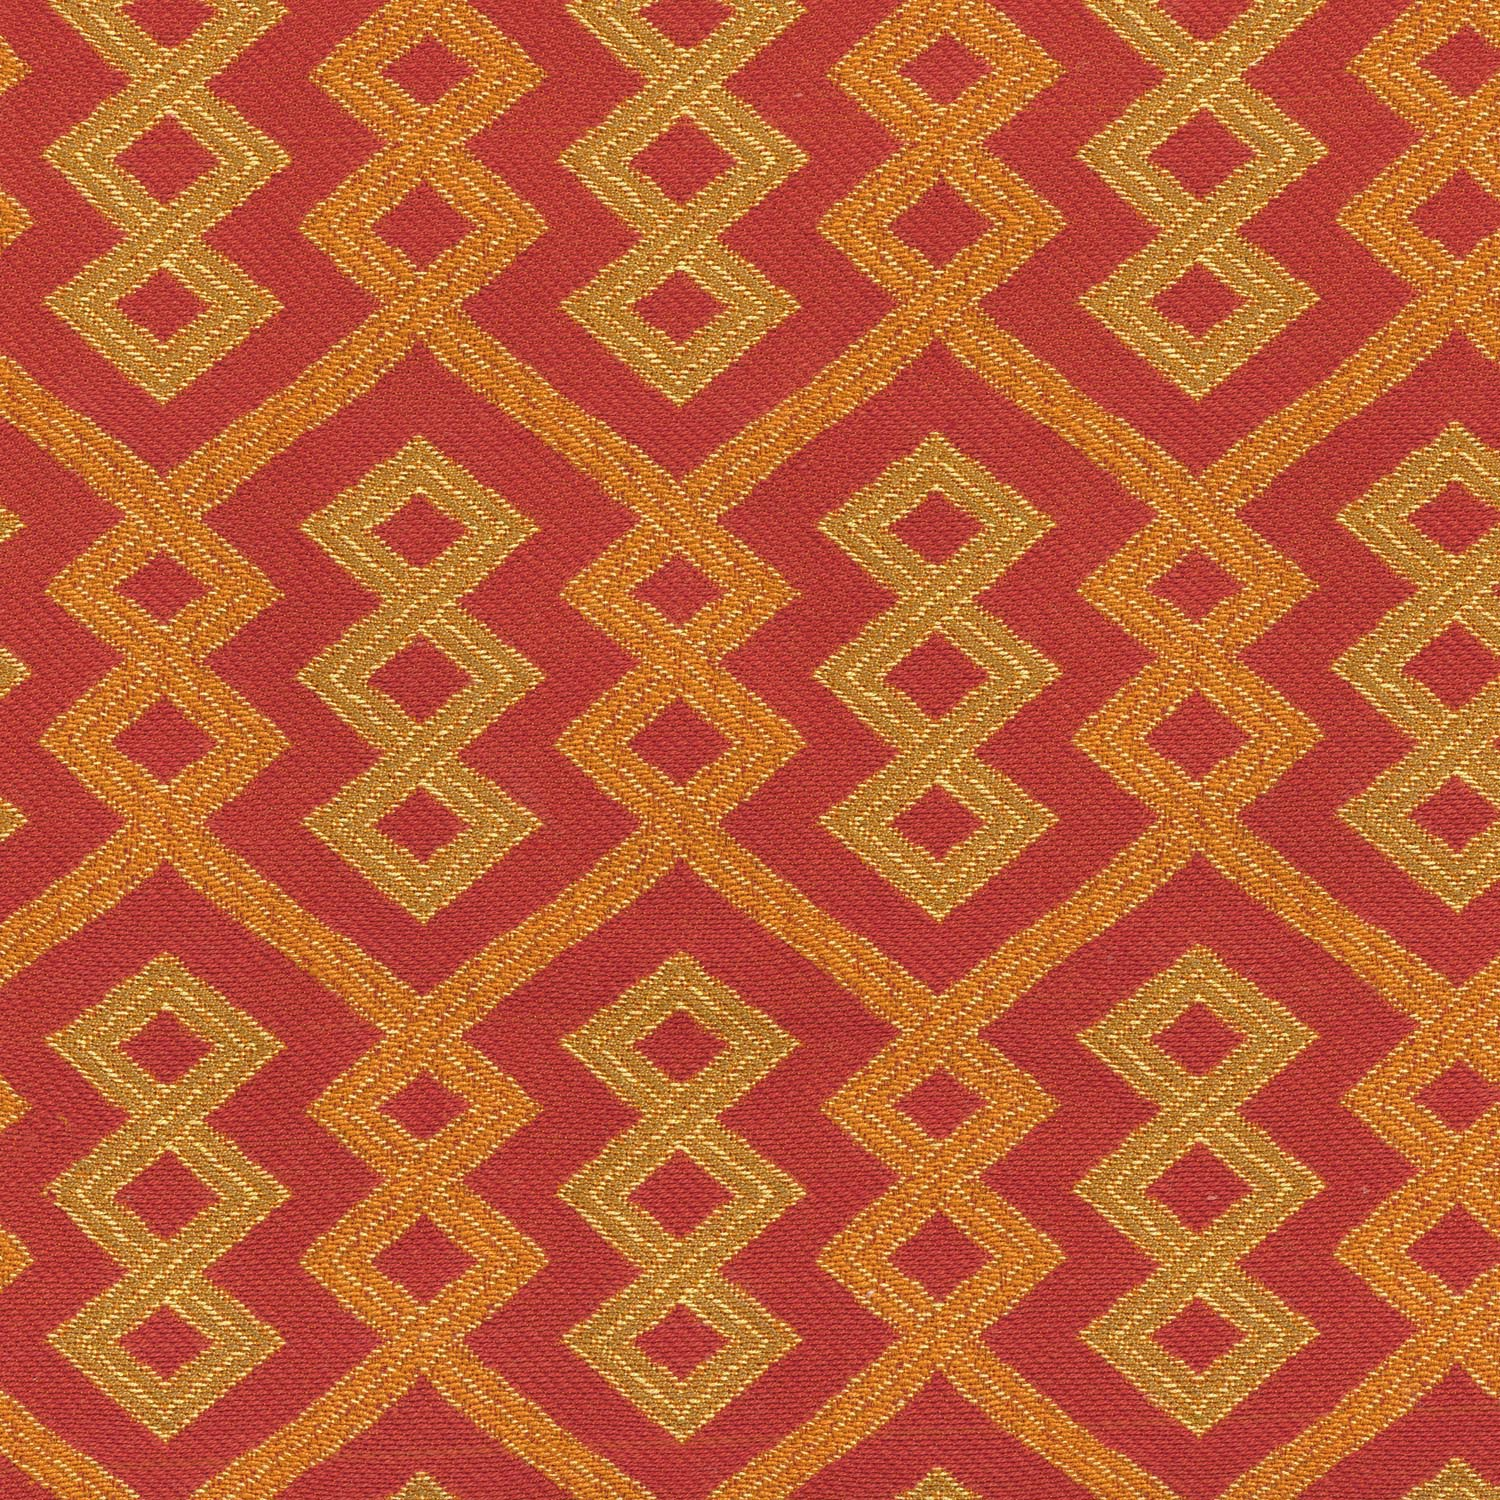 "Home Decor 8""x8"" Fabric Swatch-IMAN Home Tribal Twist Spice"